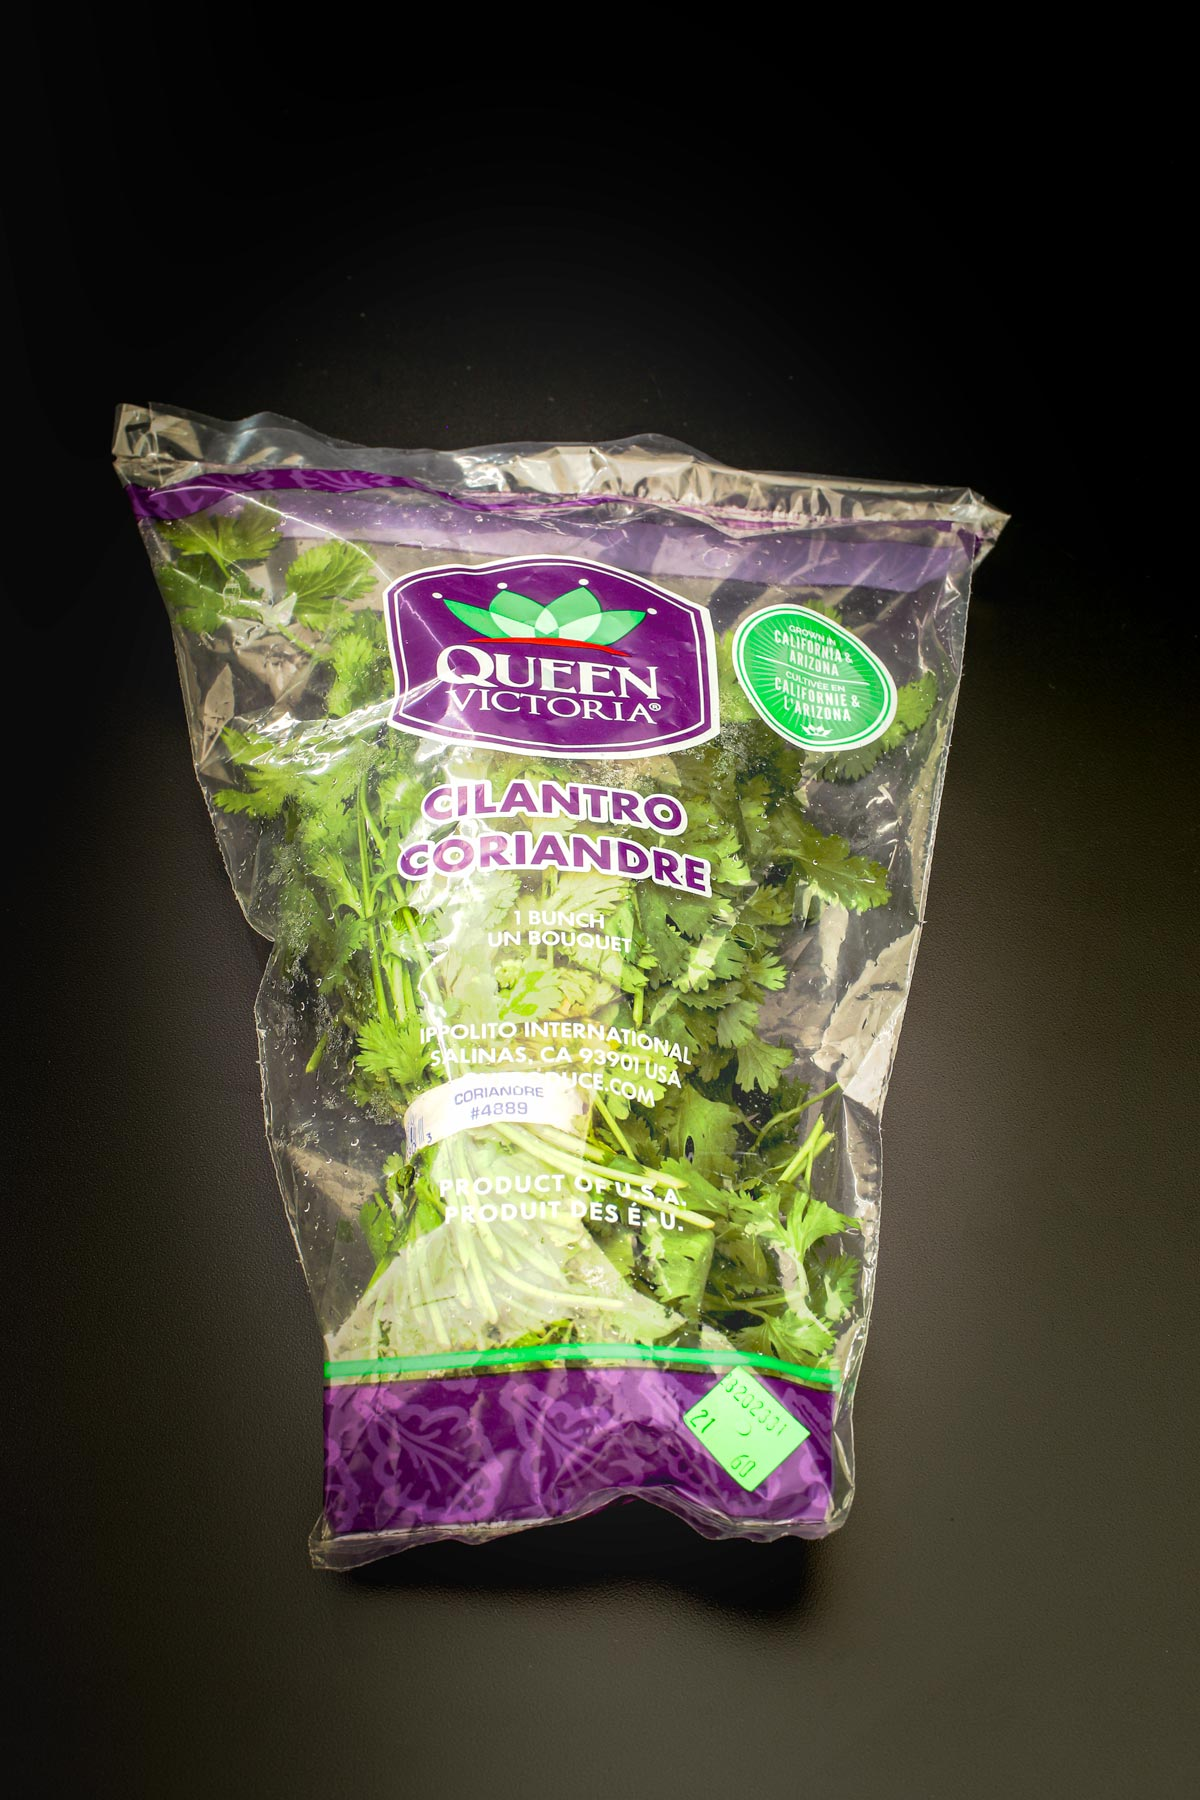 fresh bunch of cilantro in a perforated plastic bag.